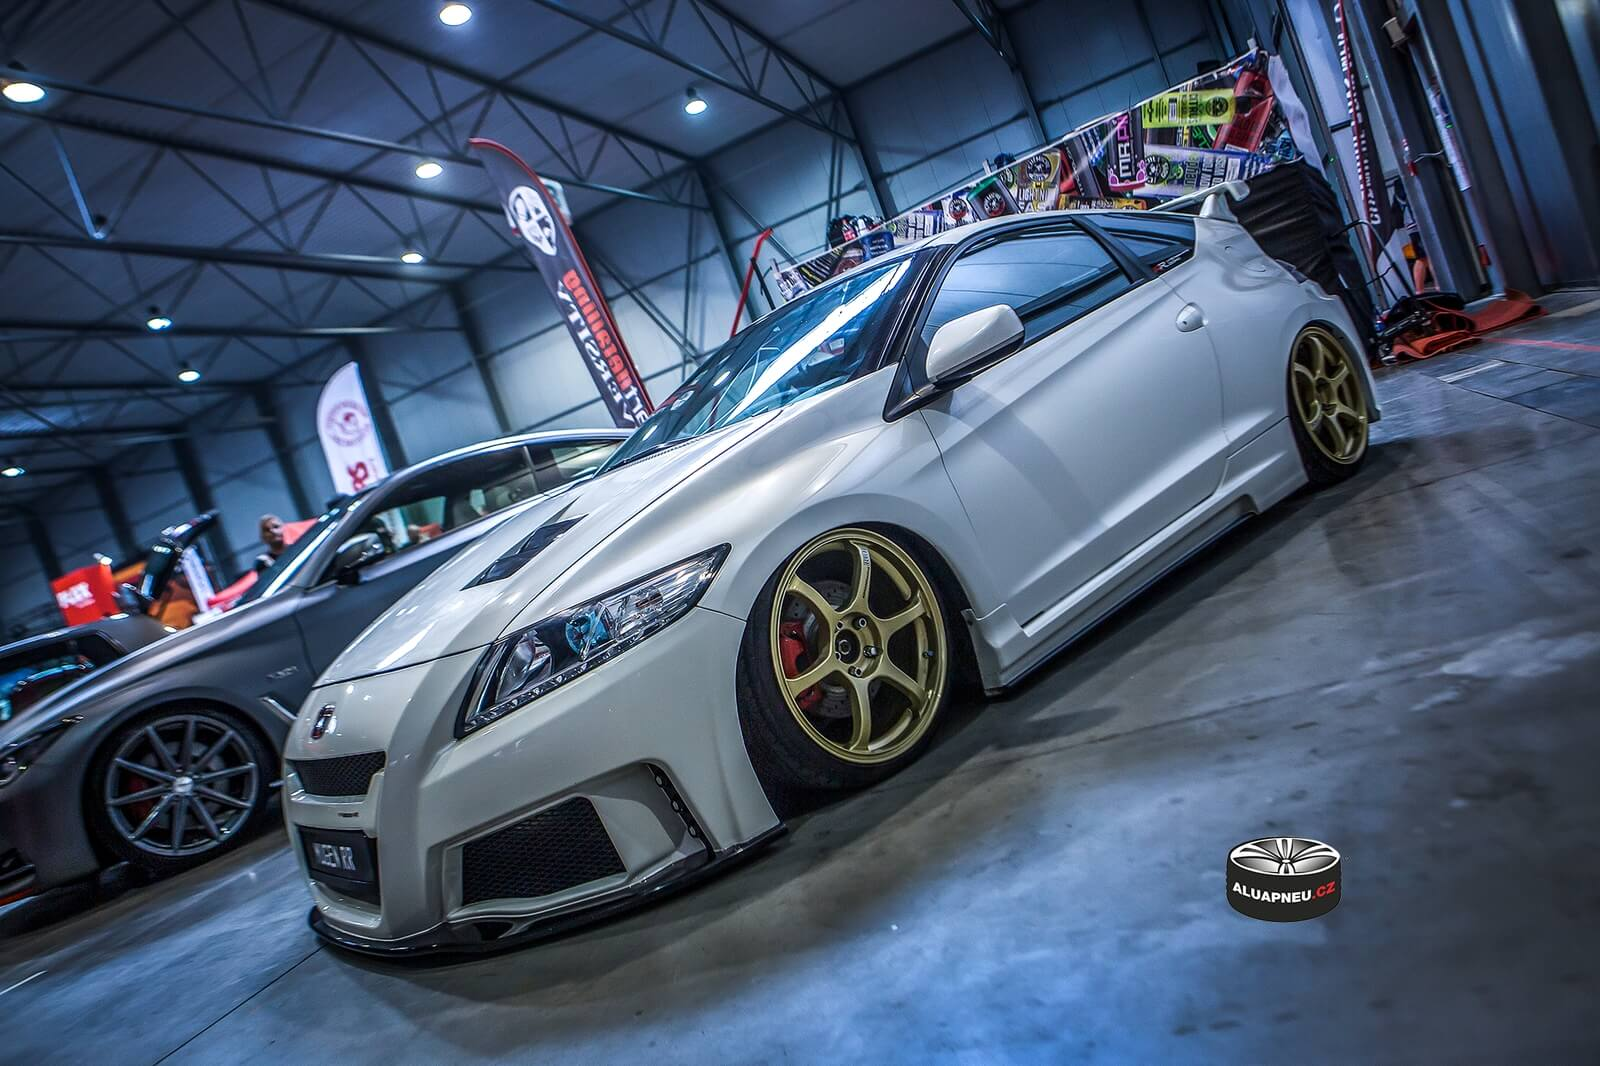 Alu kola Advan Rg2 gold Honda Crz Prague Car Fest